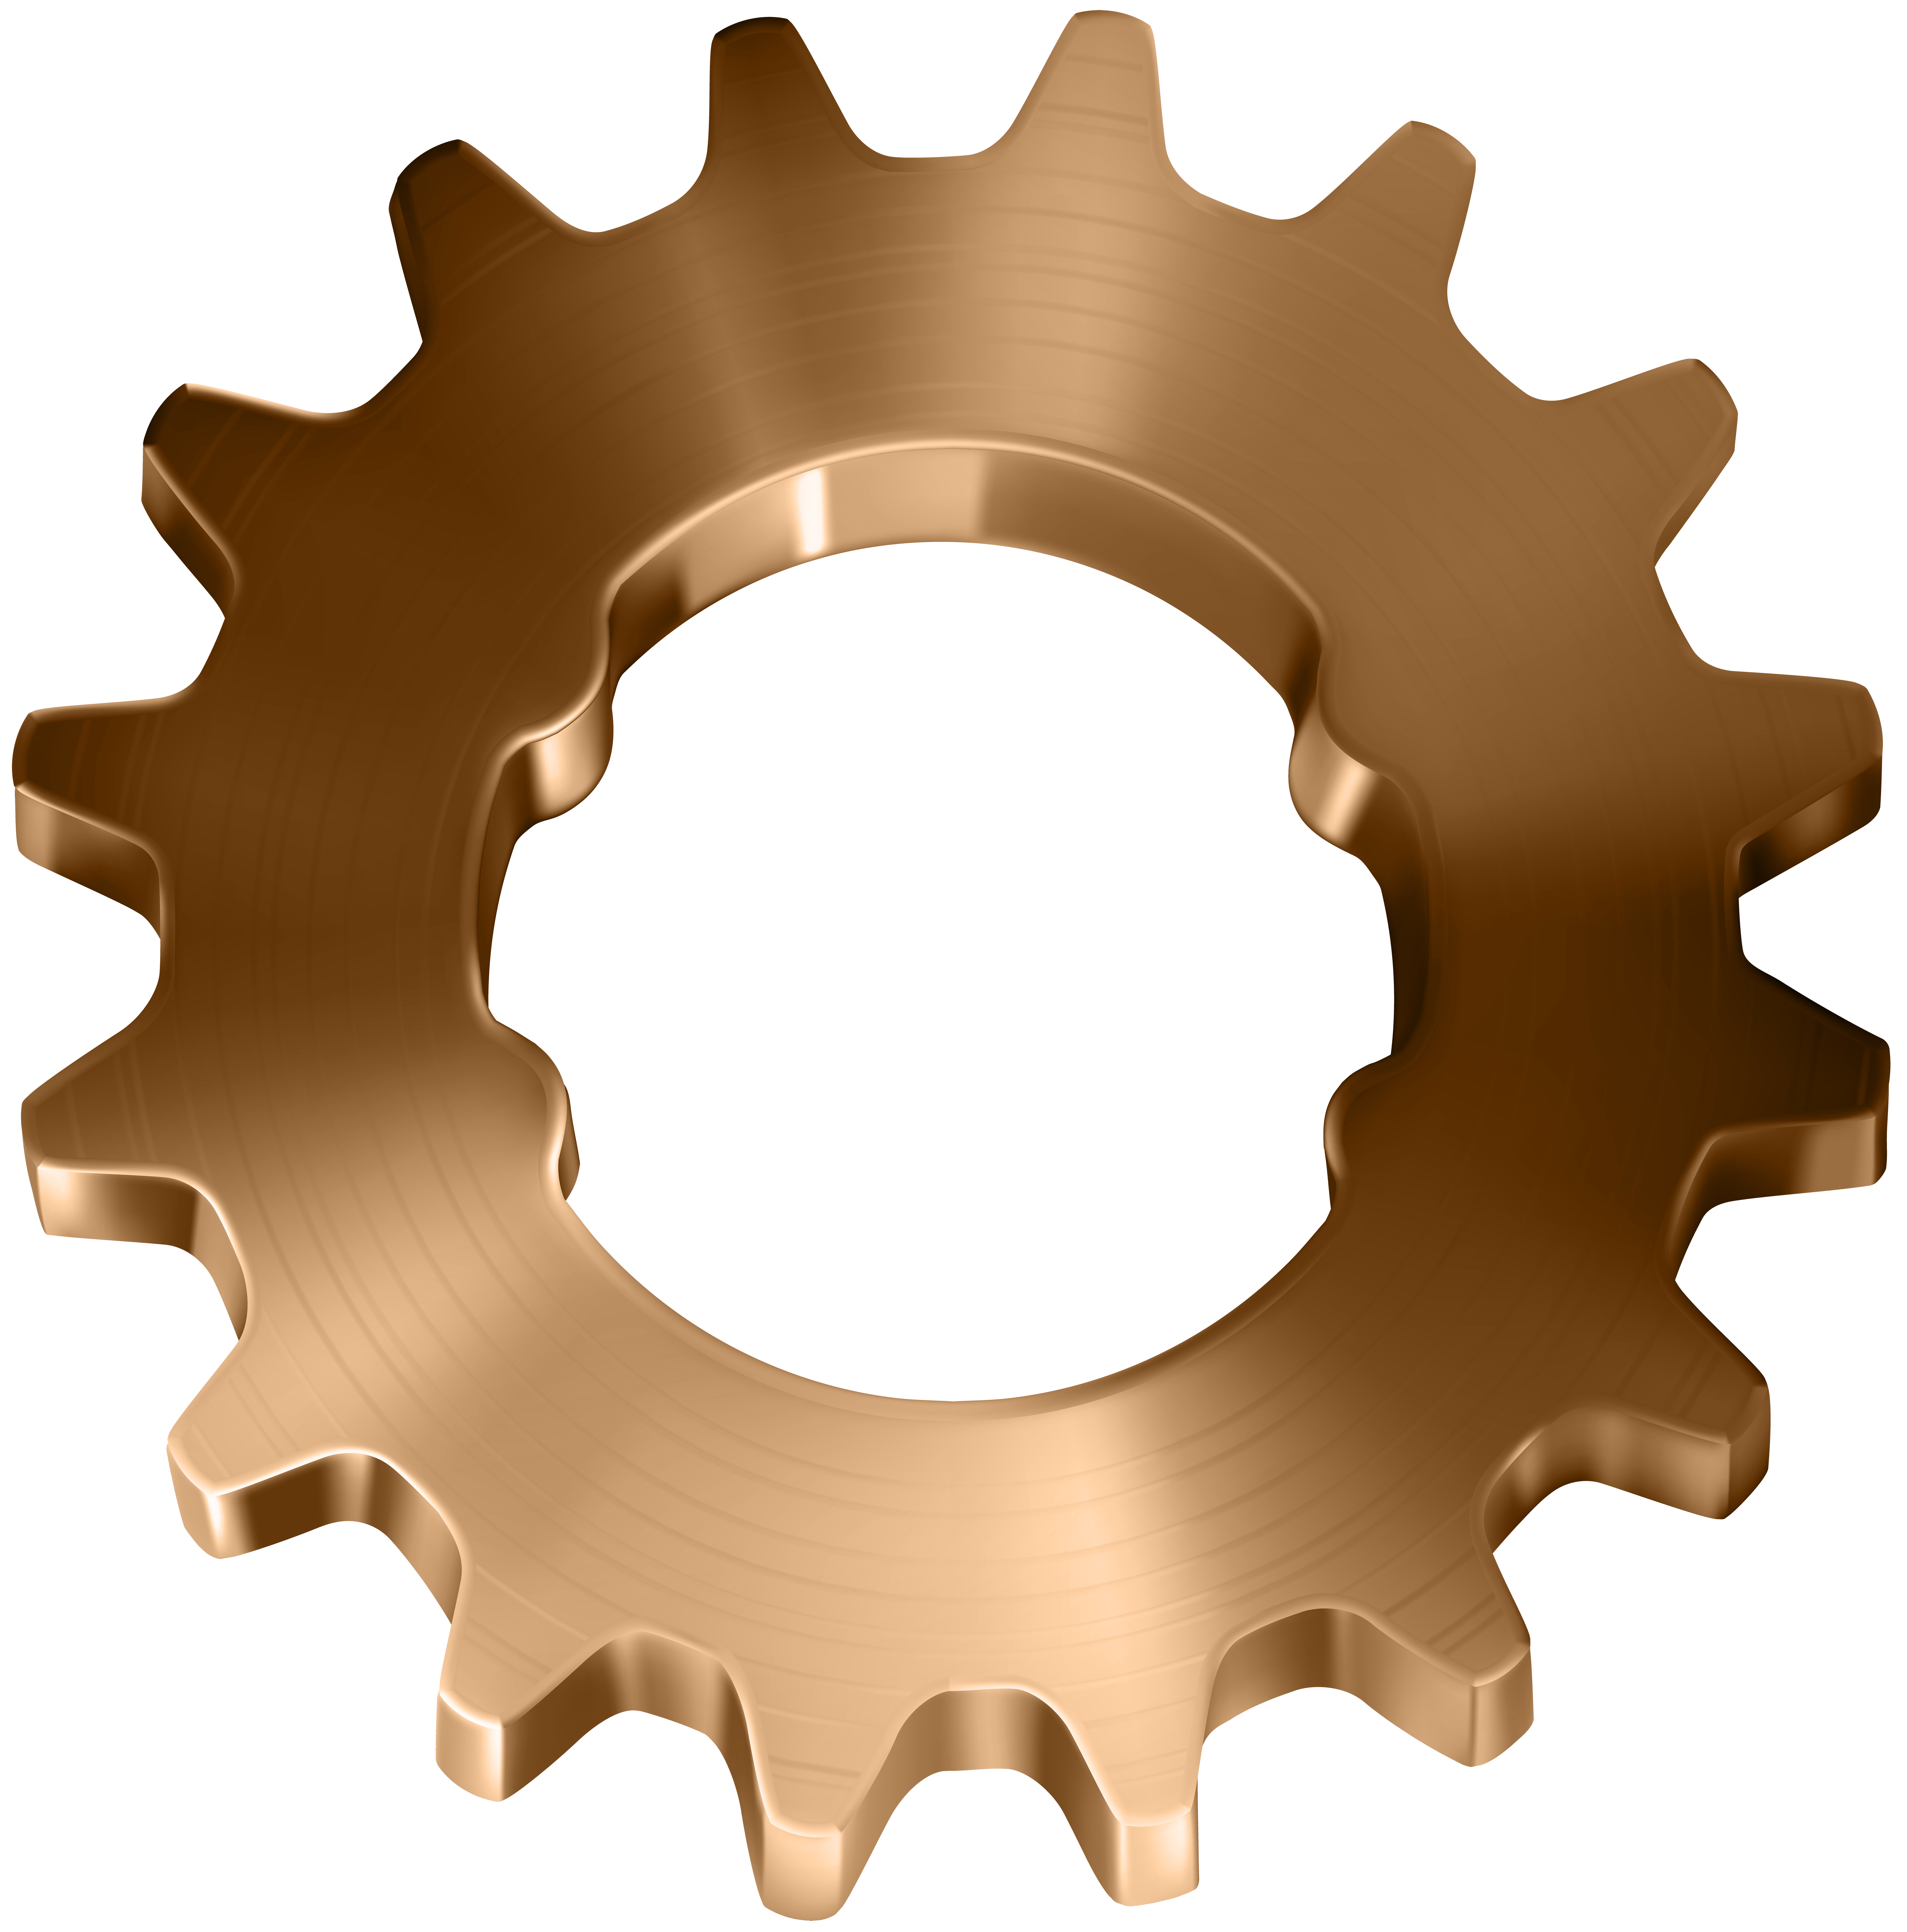 Gear heart clipart vector freeuse download Copper Gear Transparent Clip Art Image | Gallery Yopriceville ... vector freeuse download